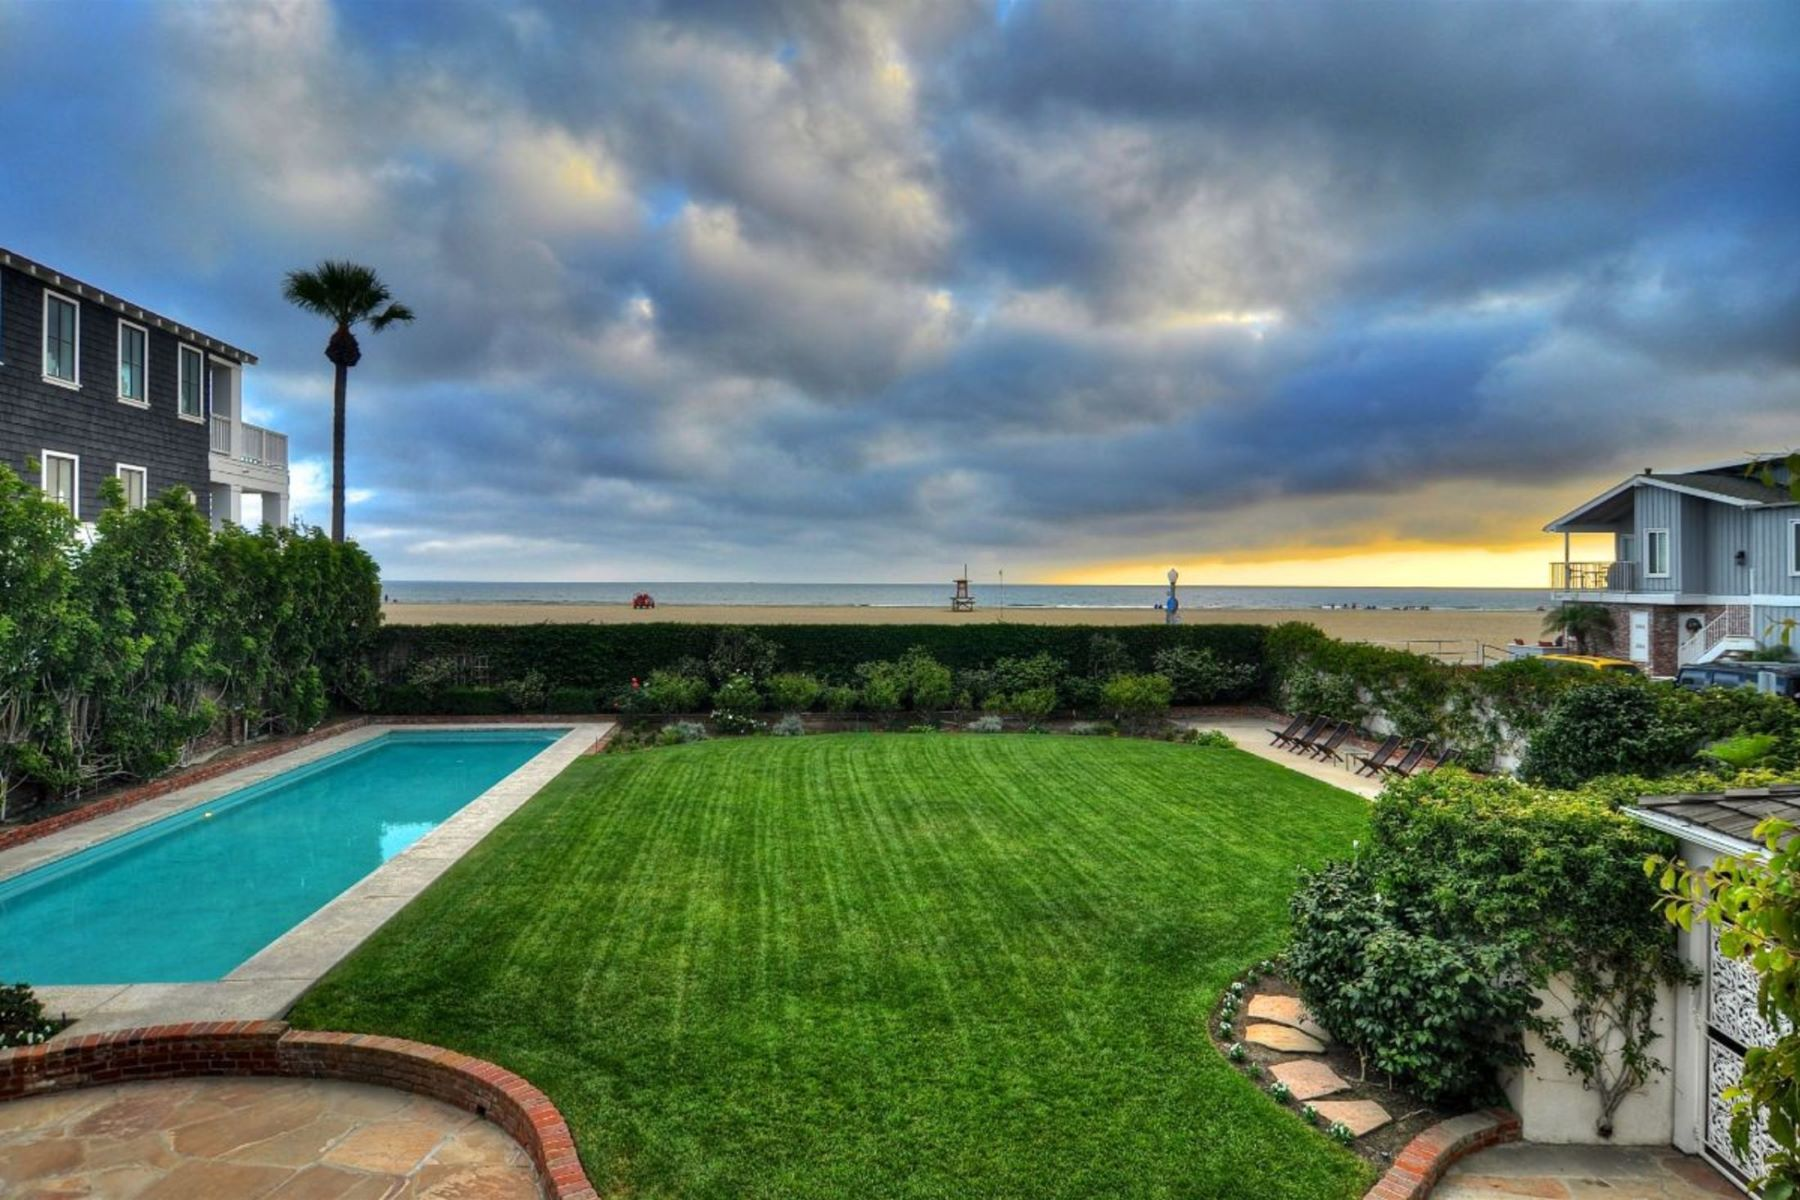 Single Family Homes for Sale at 1824 W Oceanfront Newport Beach, California 92663 United States